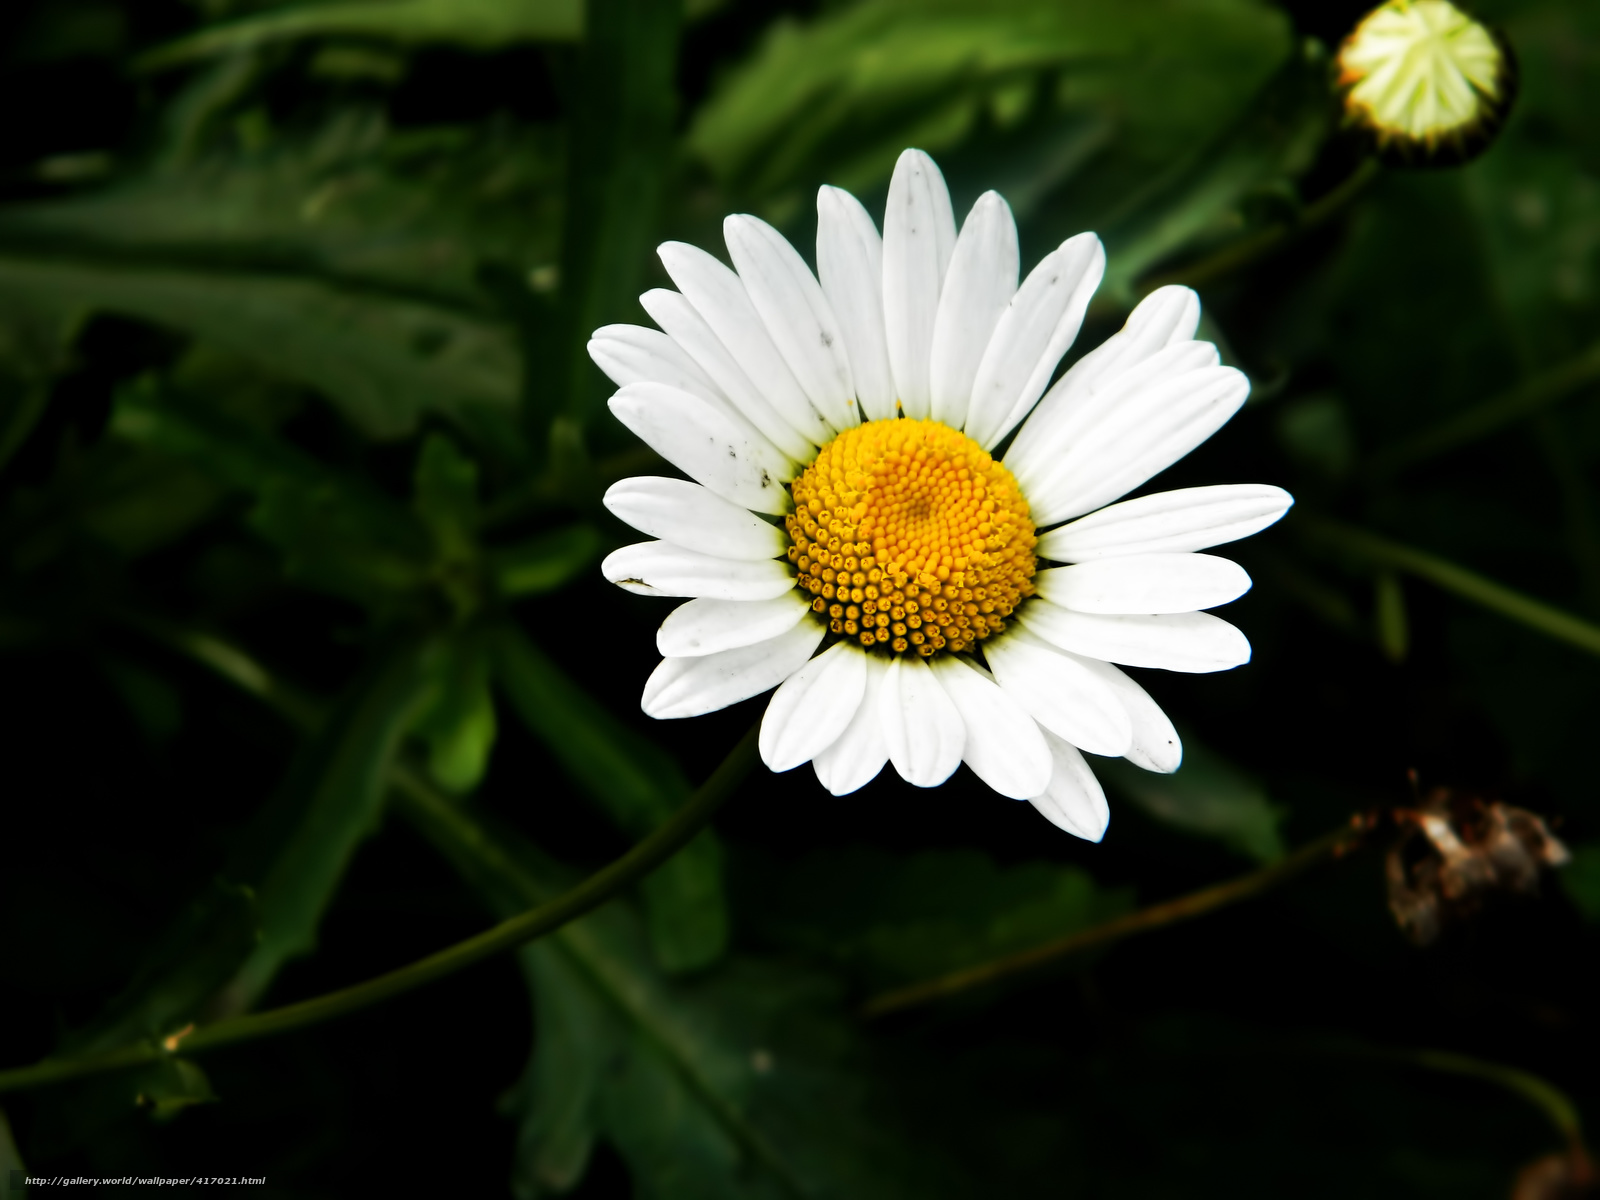 Download wallpaper flower chamomile macro greens free desktop wallpaper in